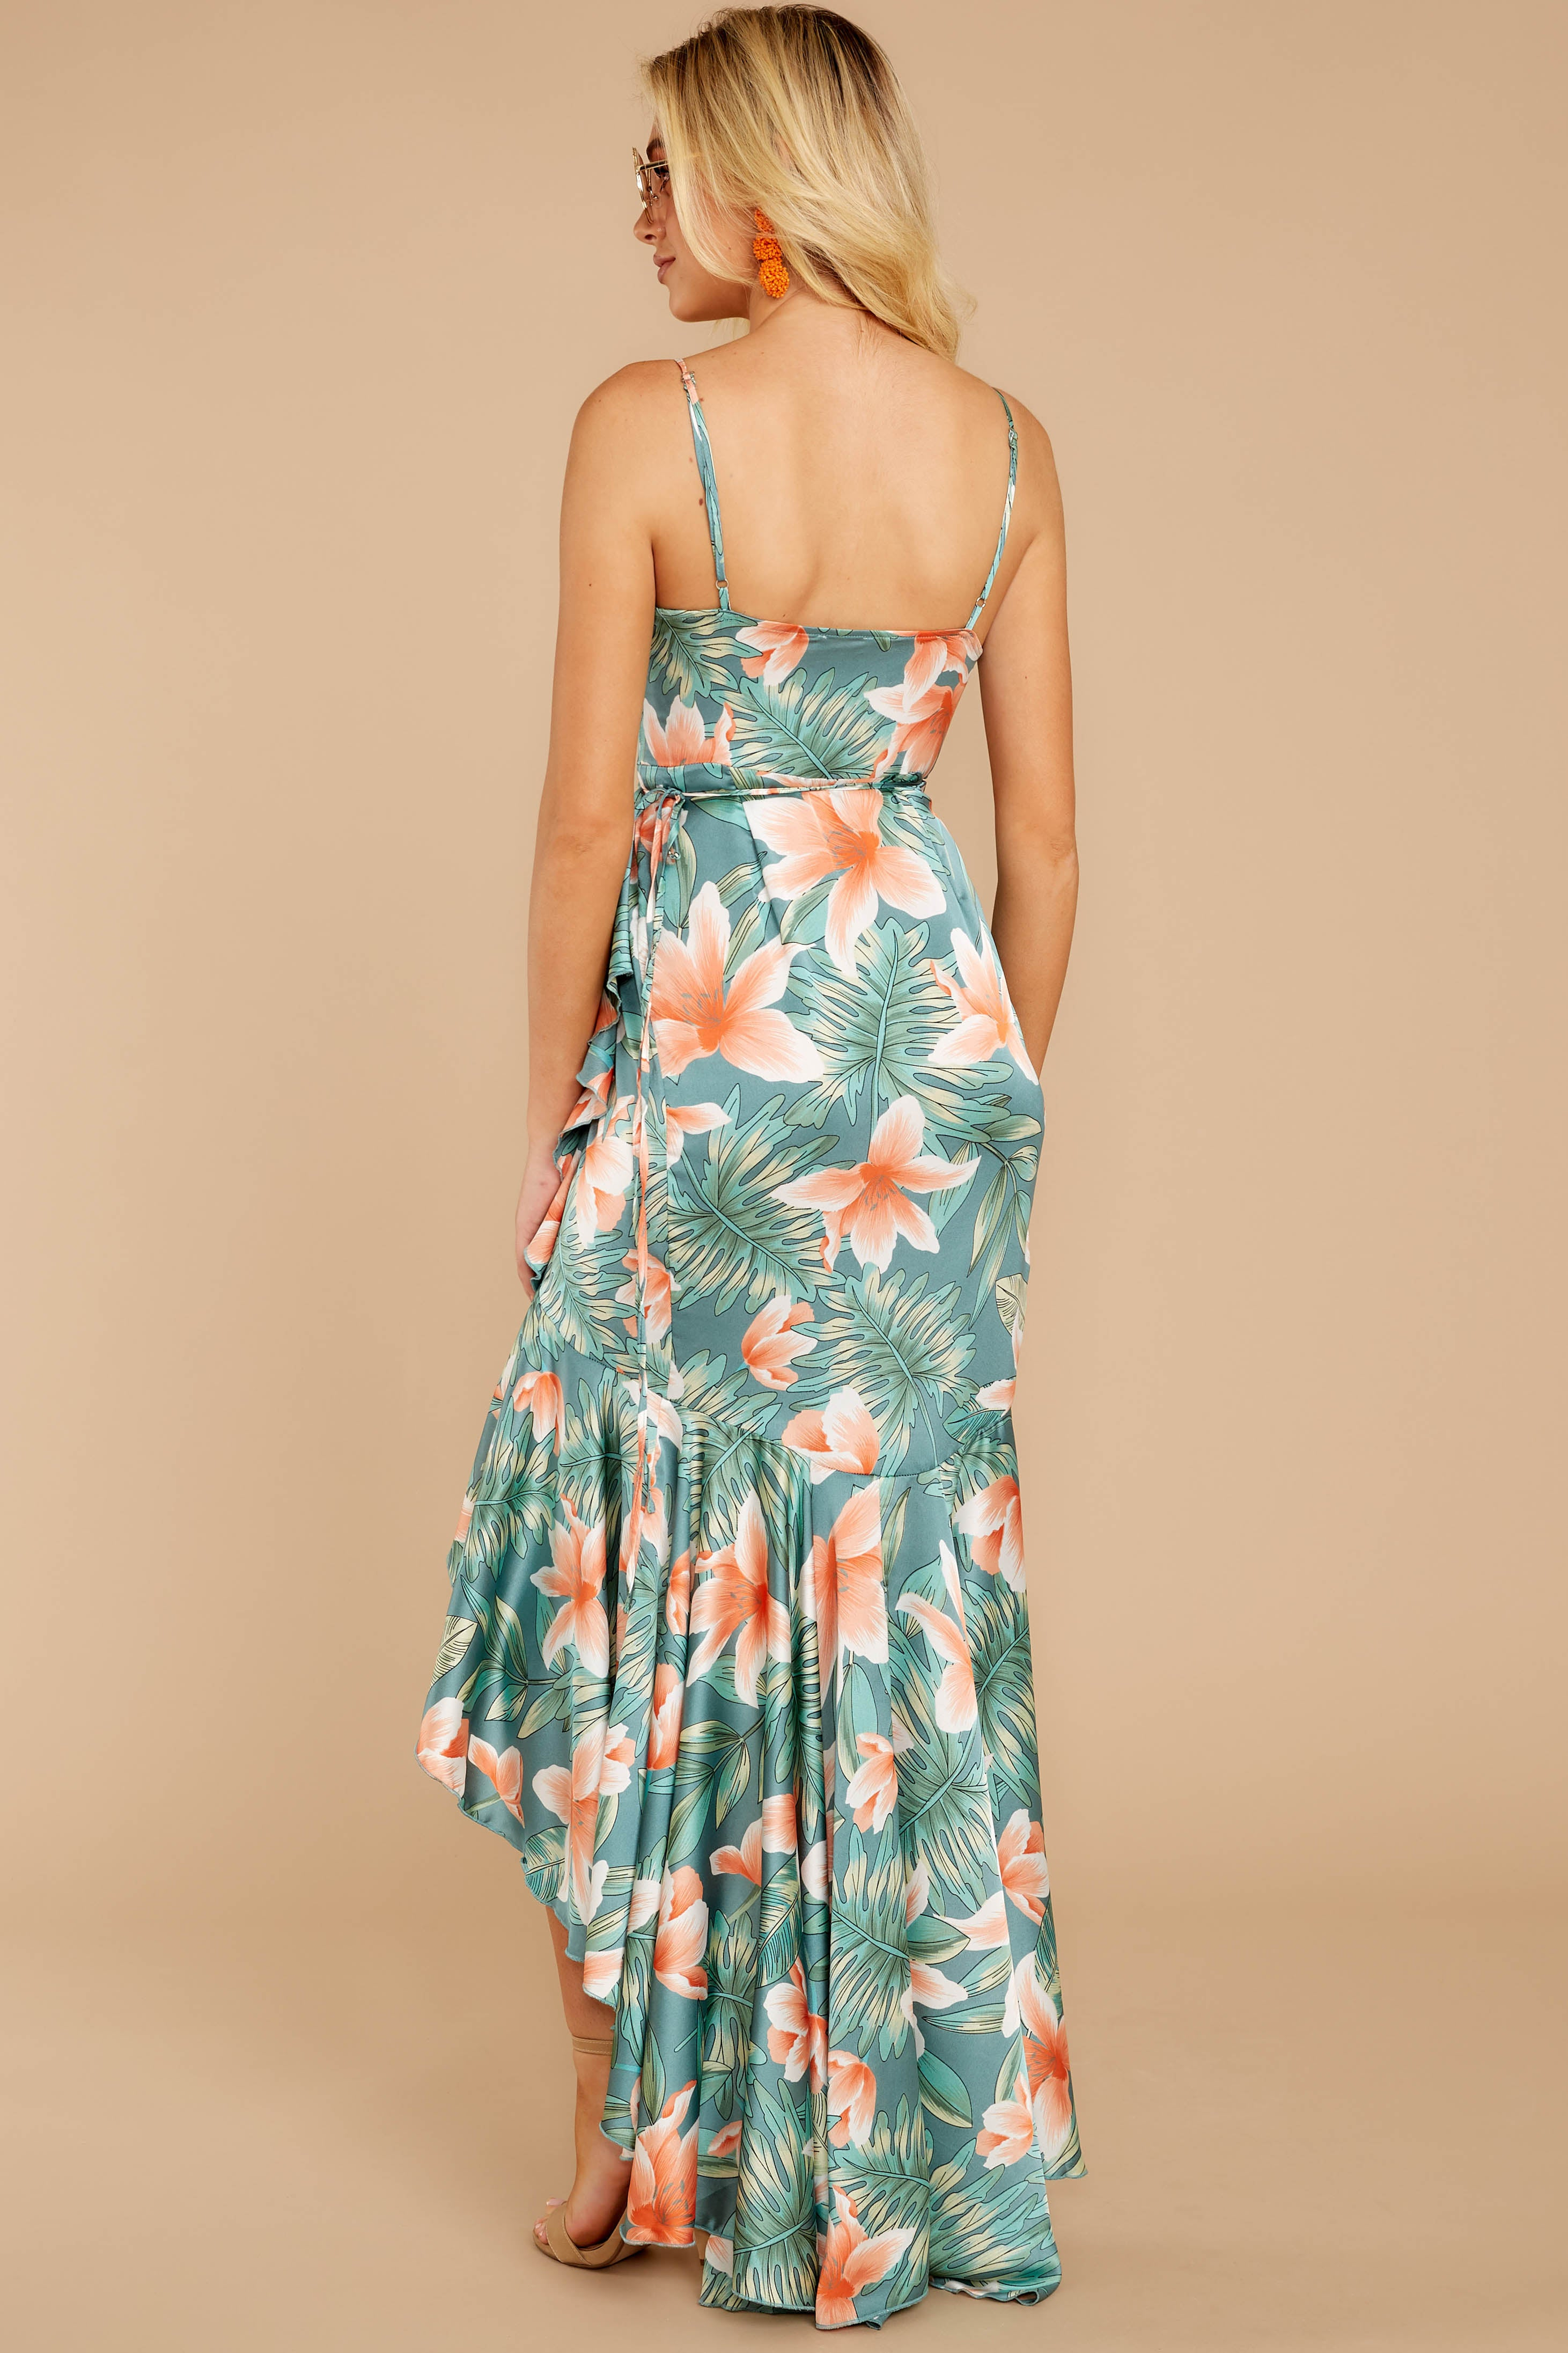 6 Flamenco Dancing Green Tropical Print Maxi Dress at reddressboutique.com